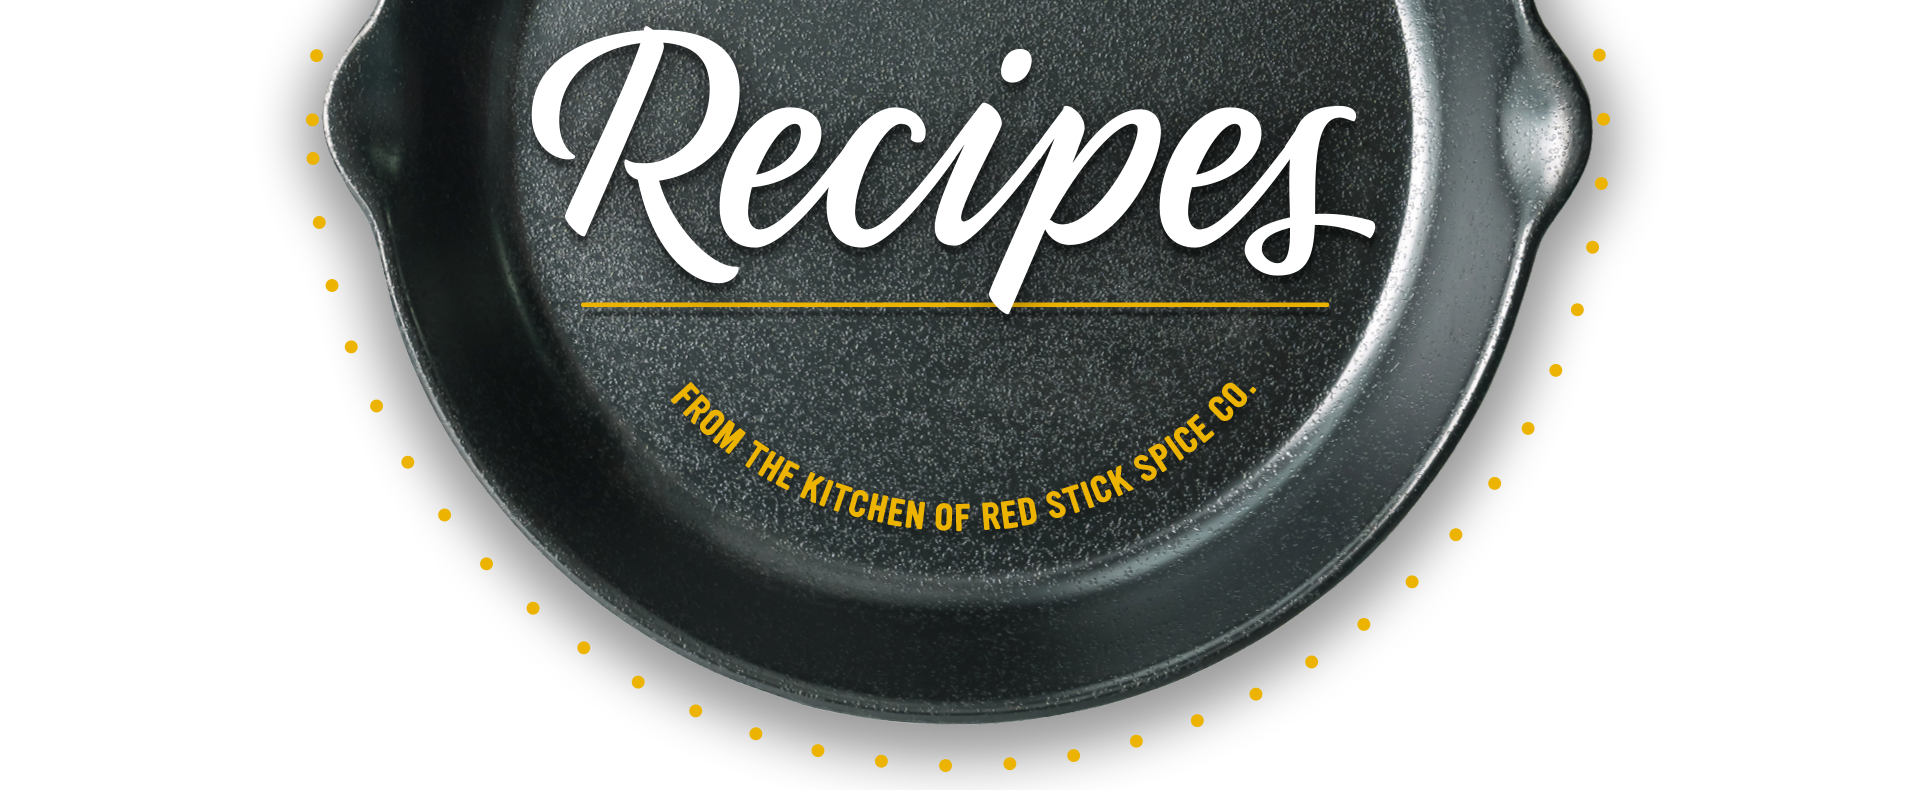 Red Stick Spice Recipes